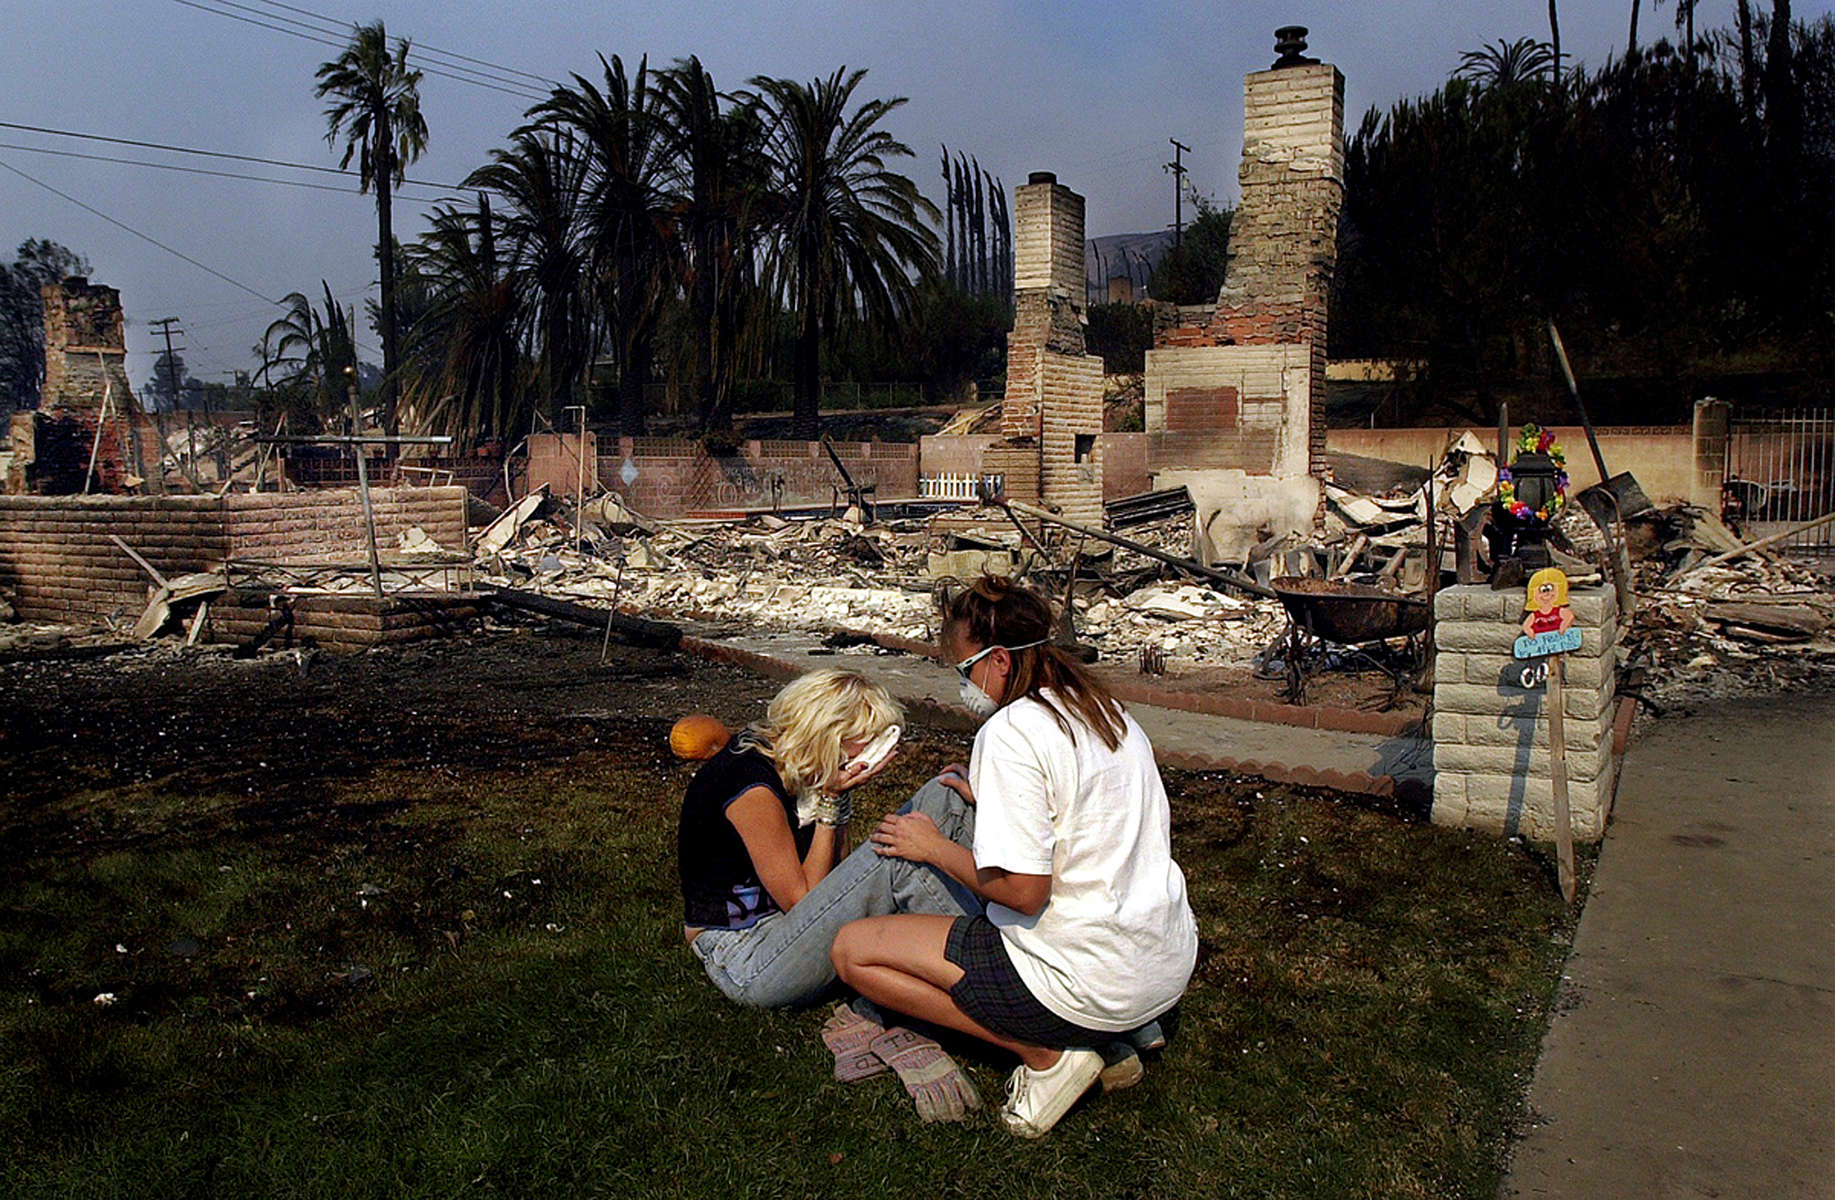 Tami Goldstein, left, starts to cry after going throughwhat is left of her home on Ralston Avenue after the Old Fire moved through the Del Rosa area of SanBernardino, Calif. (The Press-Enterprise/ Mark Zaleski)